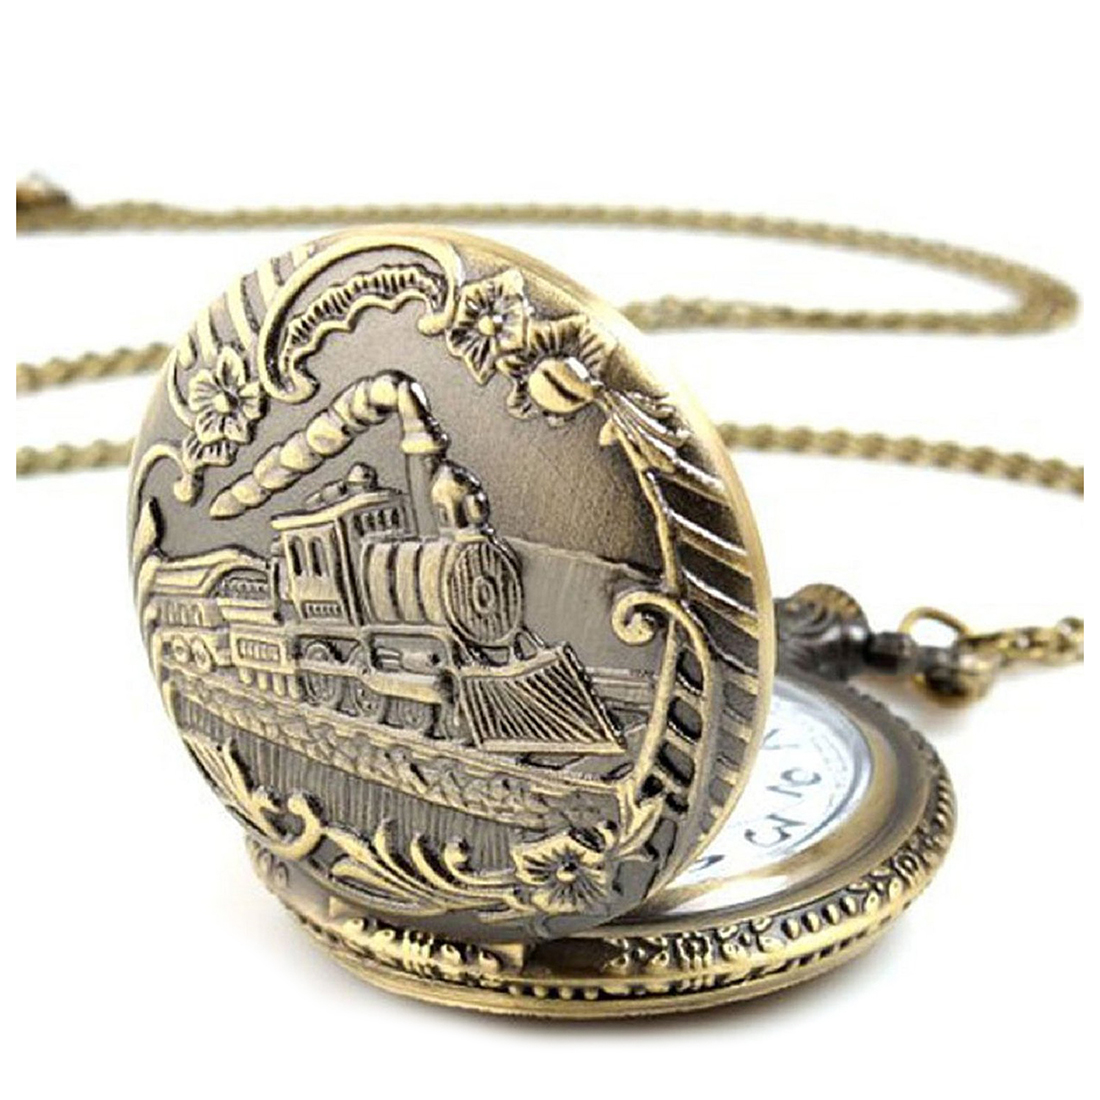 где купить Unisex Antique Vintage Brass Locomotive Chain Pocket Watch Train Bronze дешево